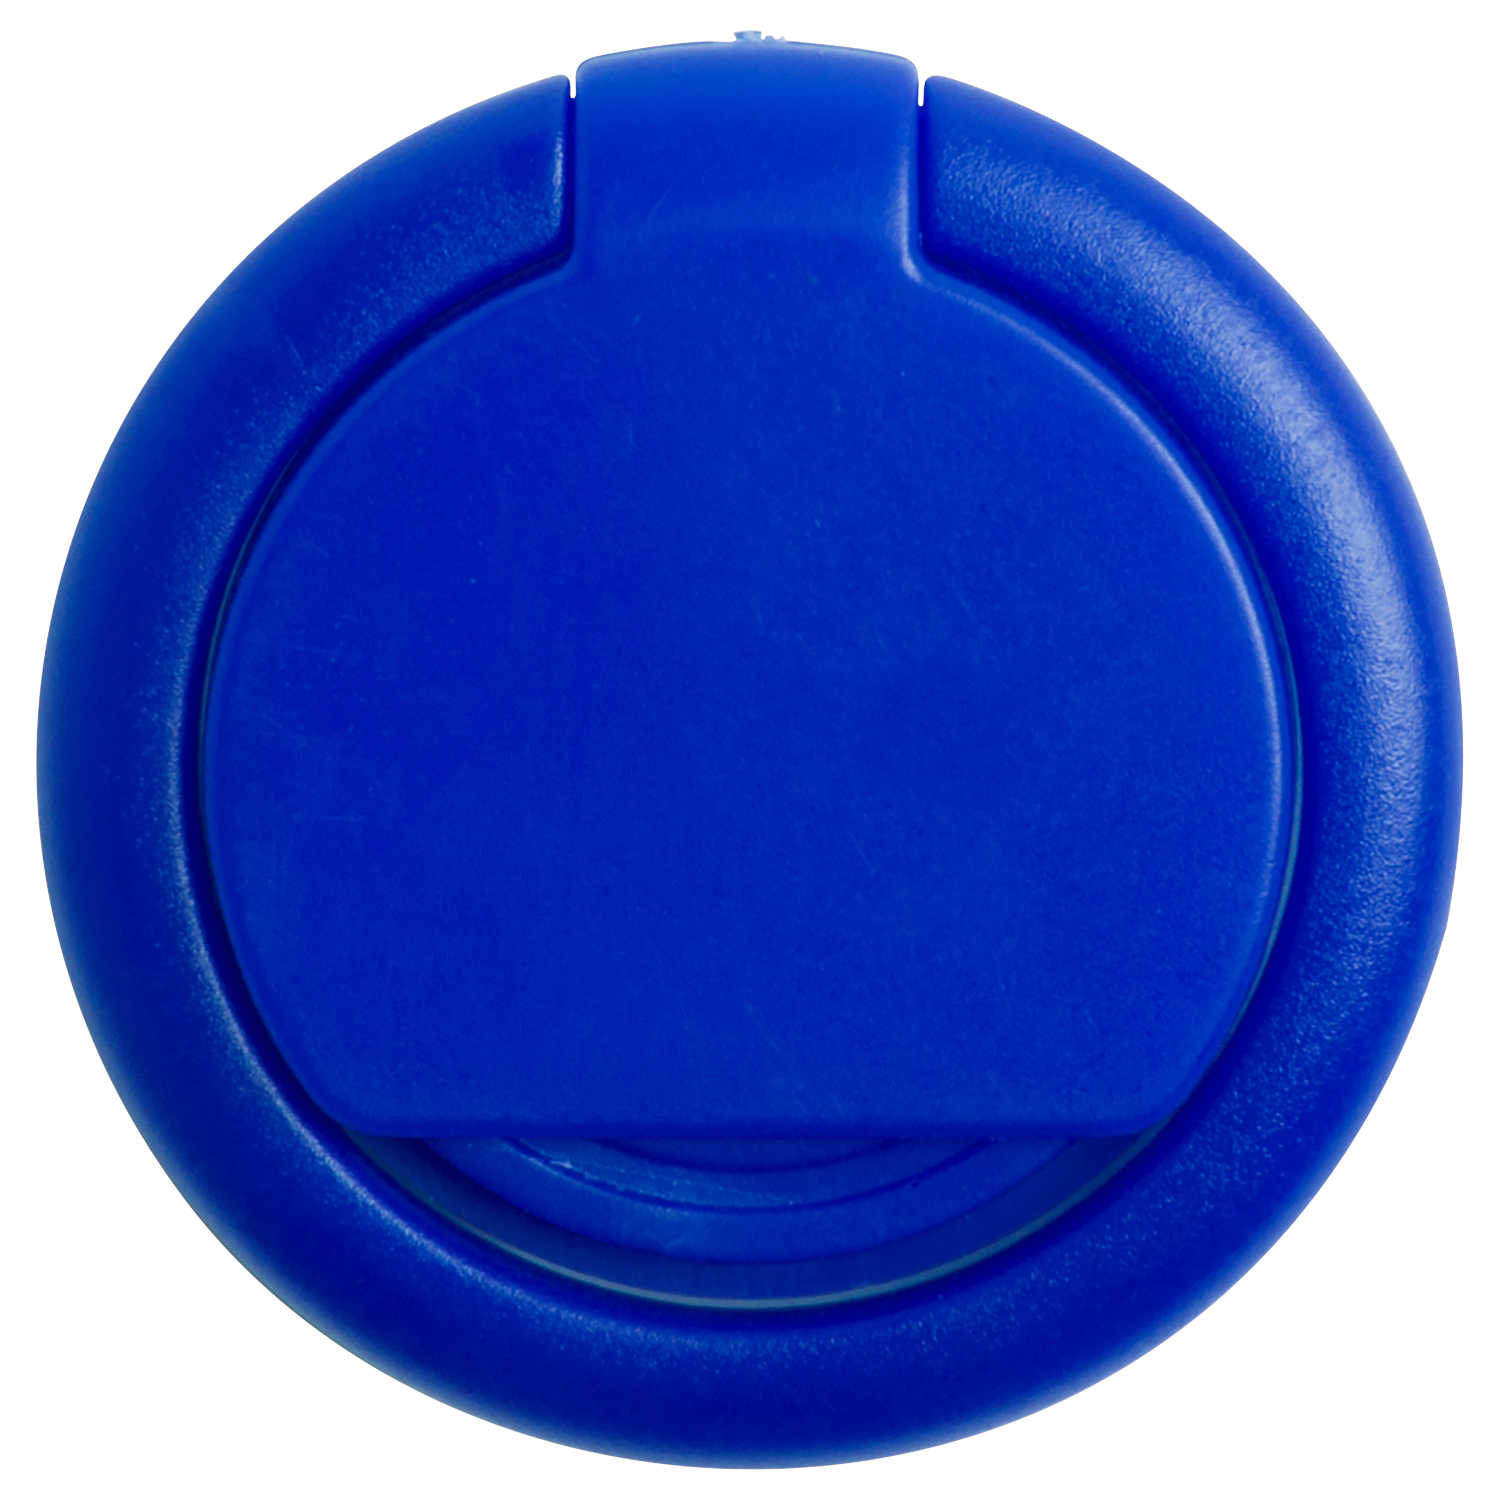 Phone Ring 868 (Plastic phone holder and phone ring) - hmi26868-07 (Blue)